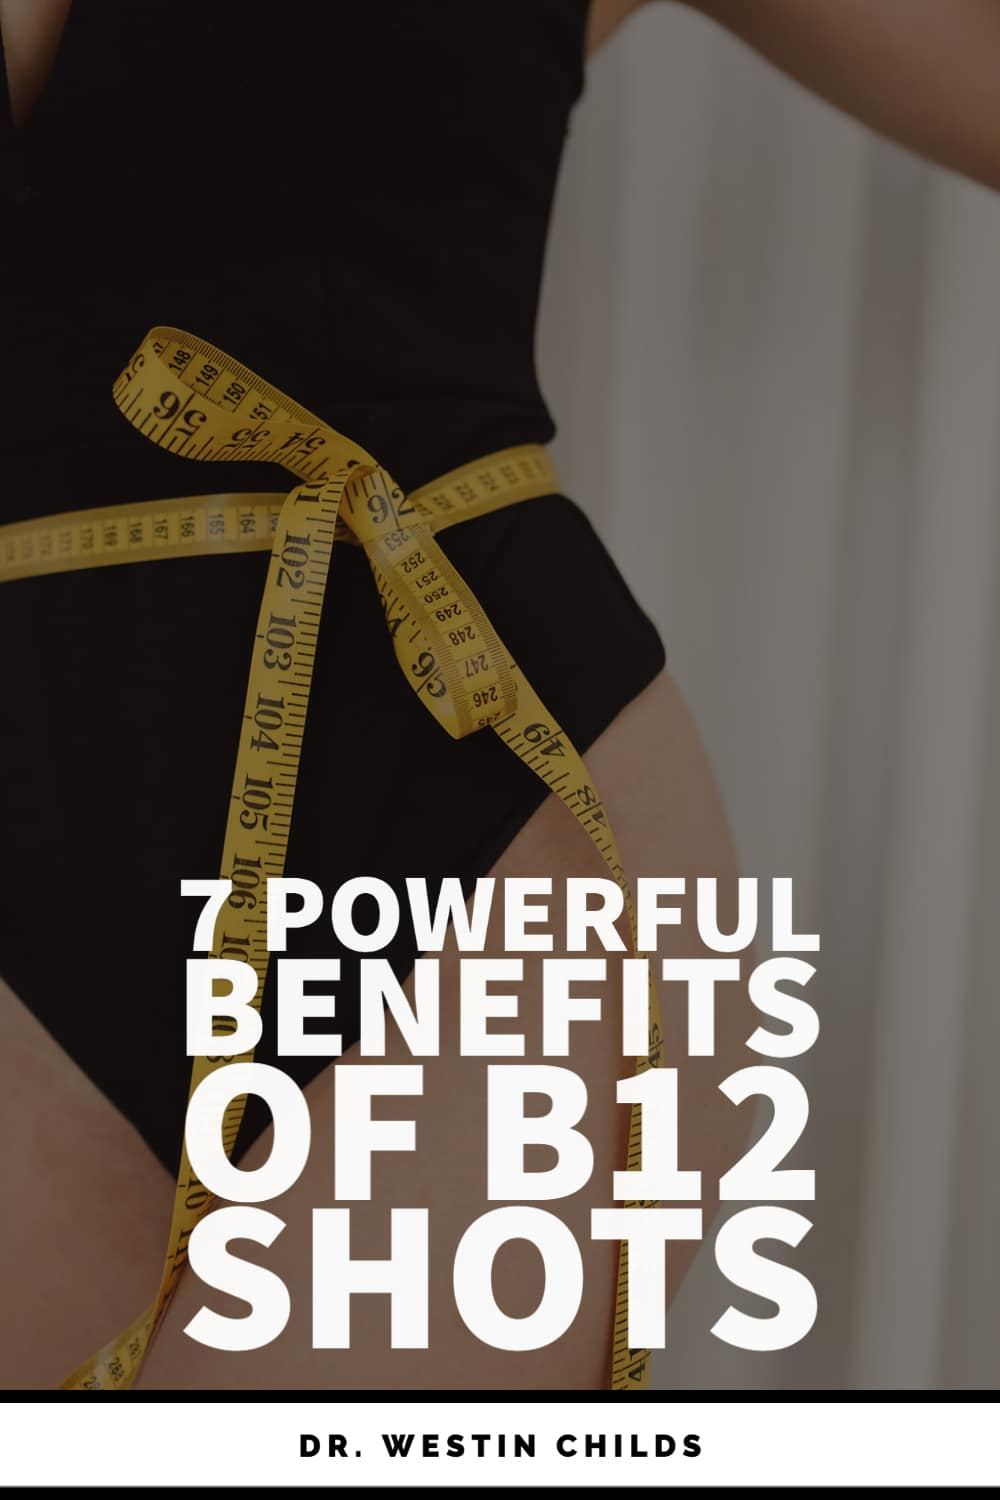 7 benefits of B12 shots that you should know before using them